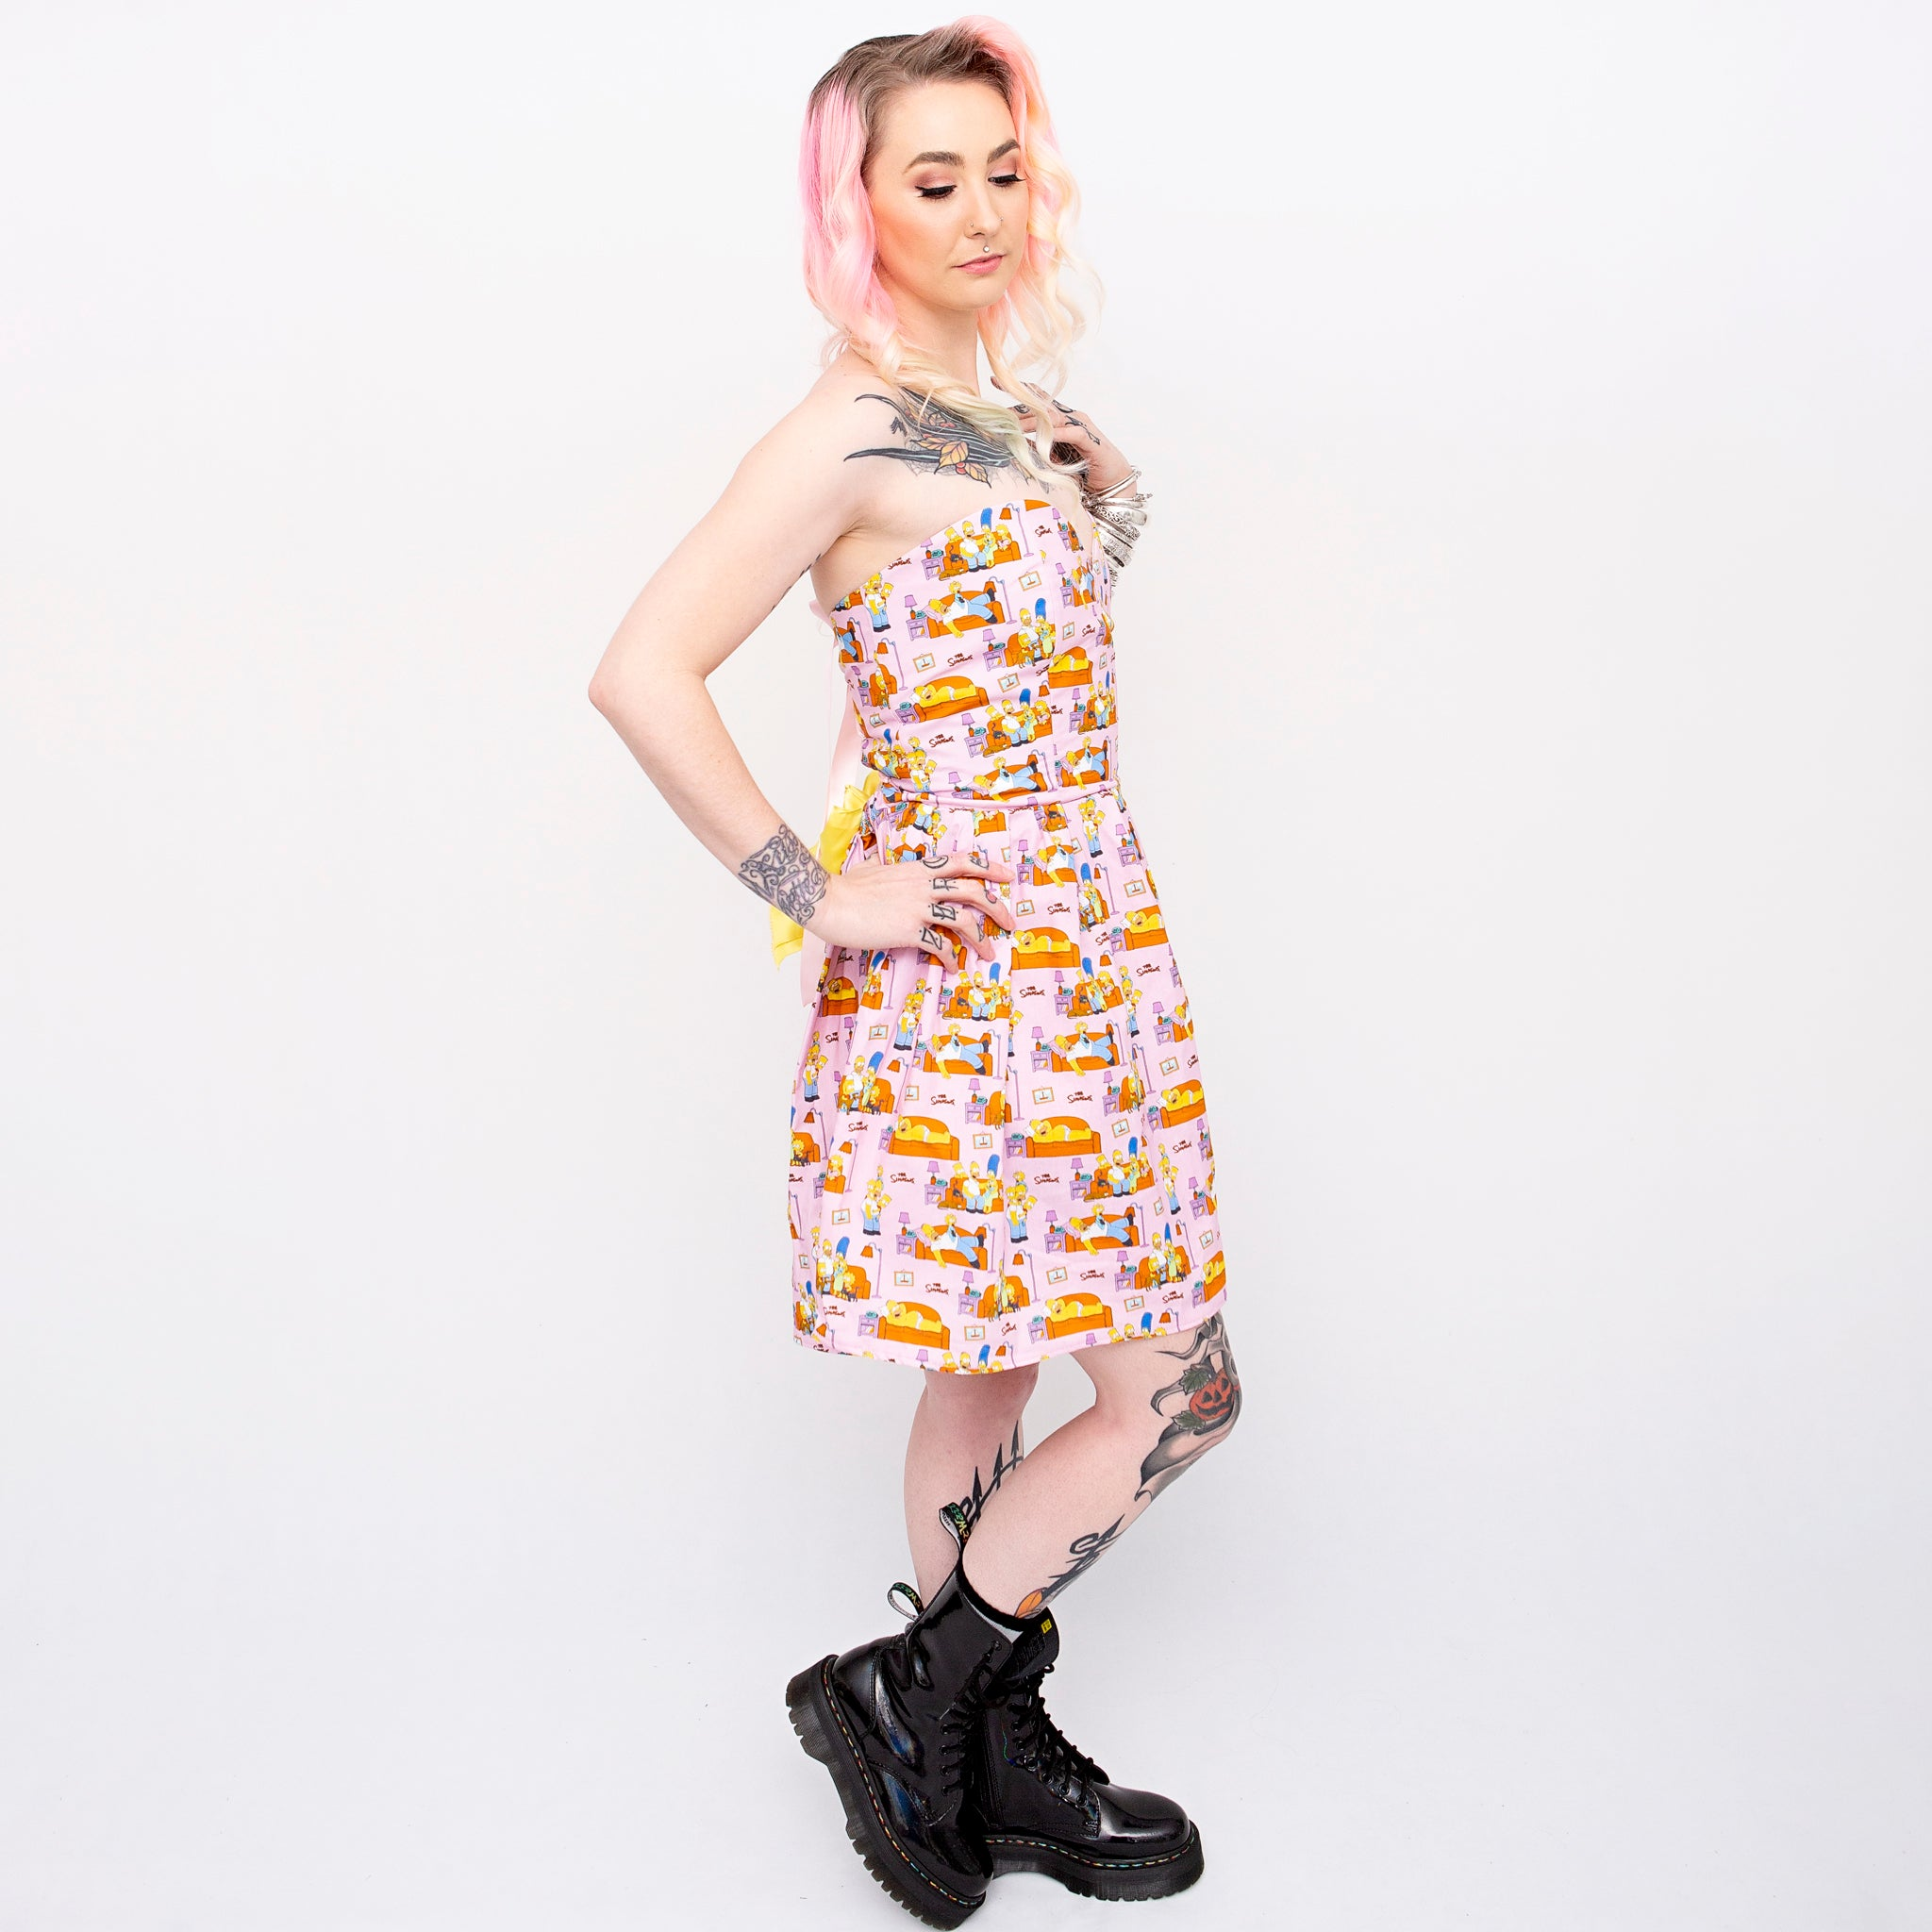 The Simpsons Family Sweetheart Dress